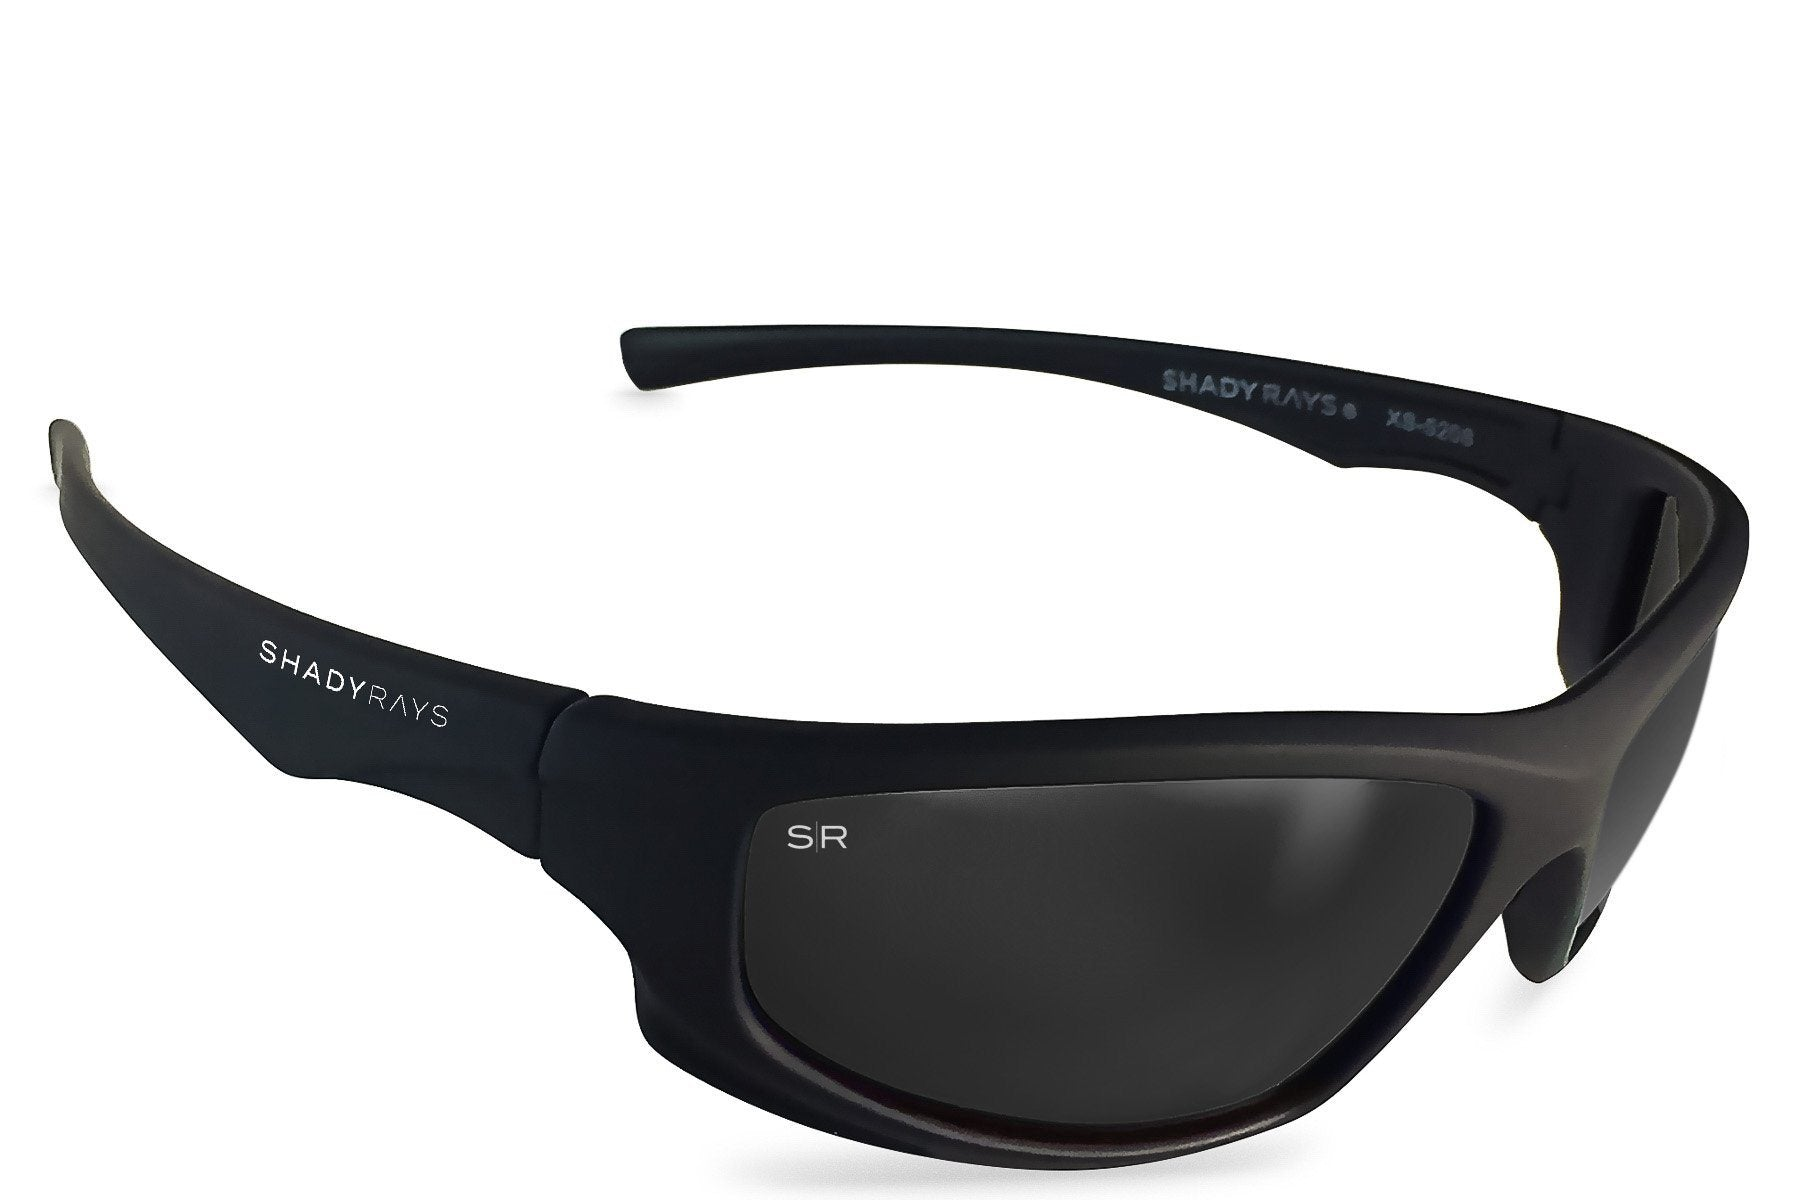 585c4f4296 Shady Rays X Series - Blackout Sunglasses – Shady Rays®